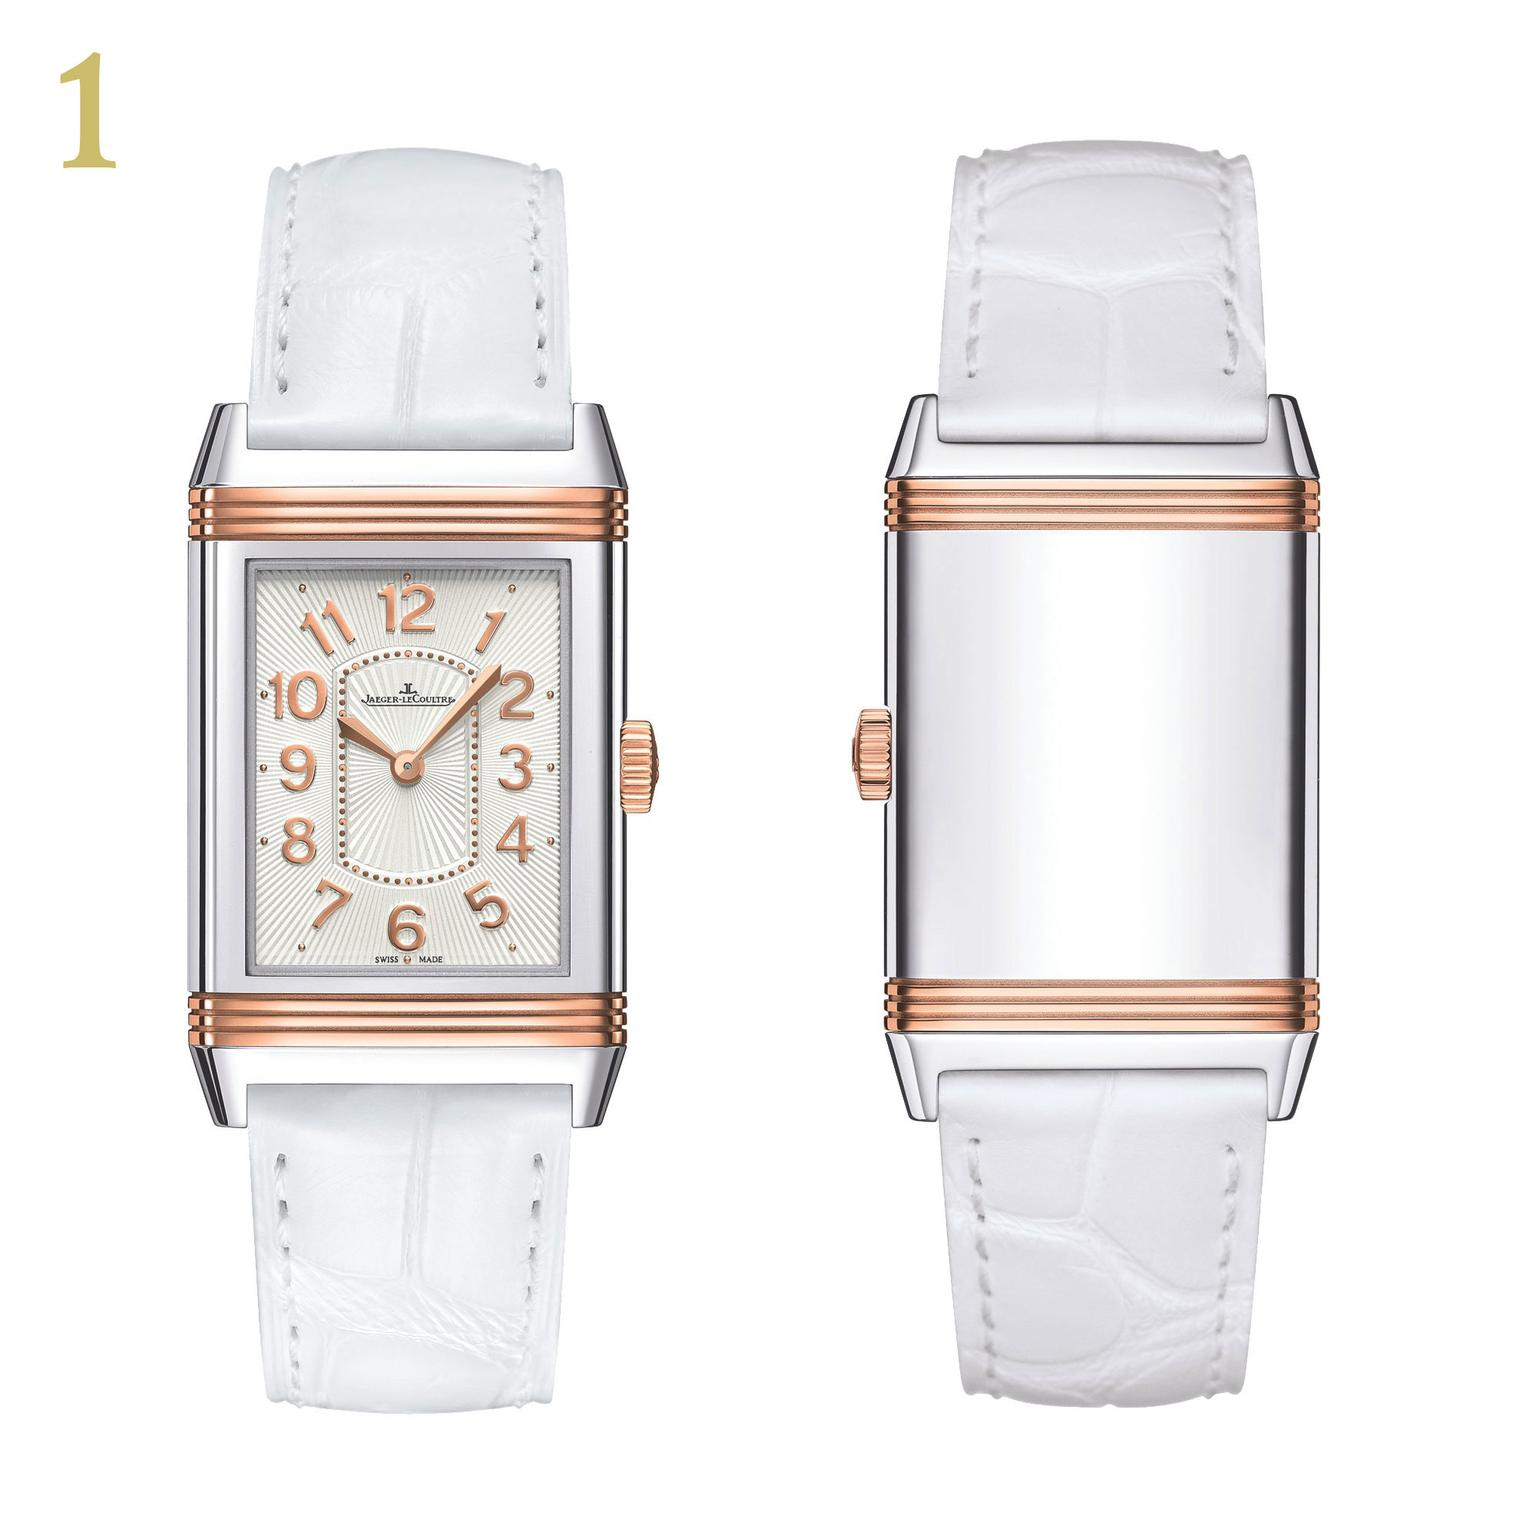 Jaeger-LeCoultre Grande Reverso Ultra Thin watch